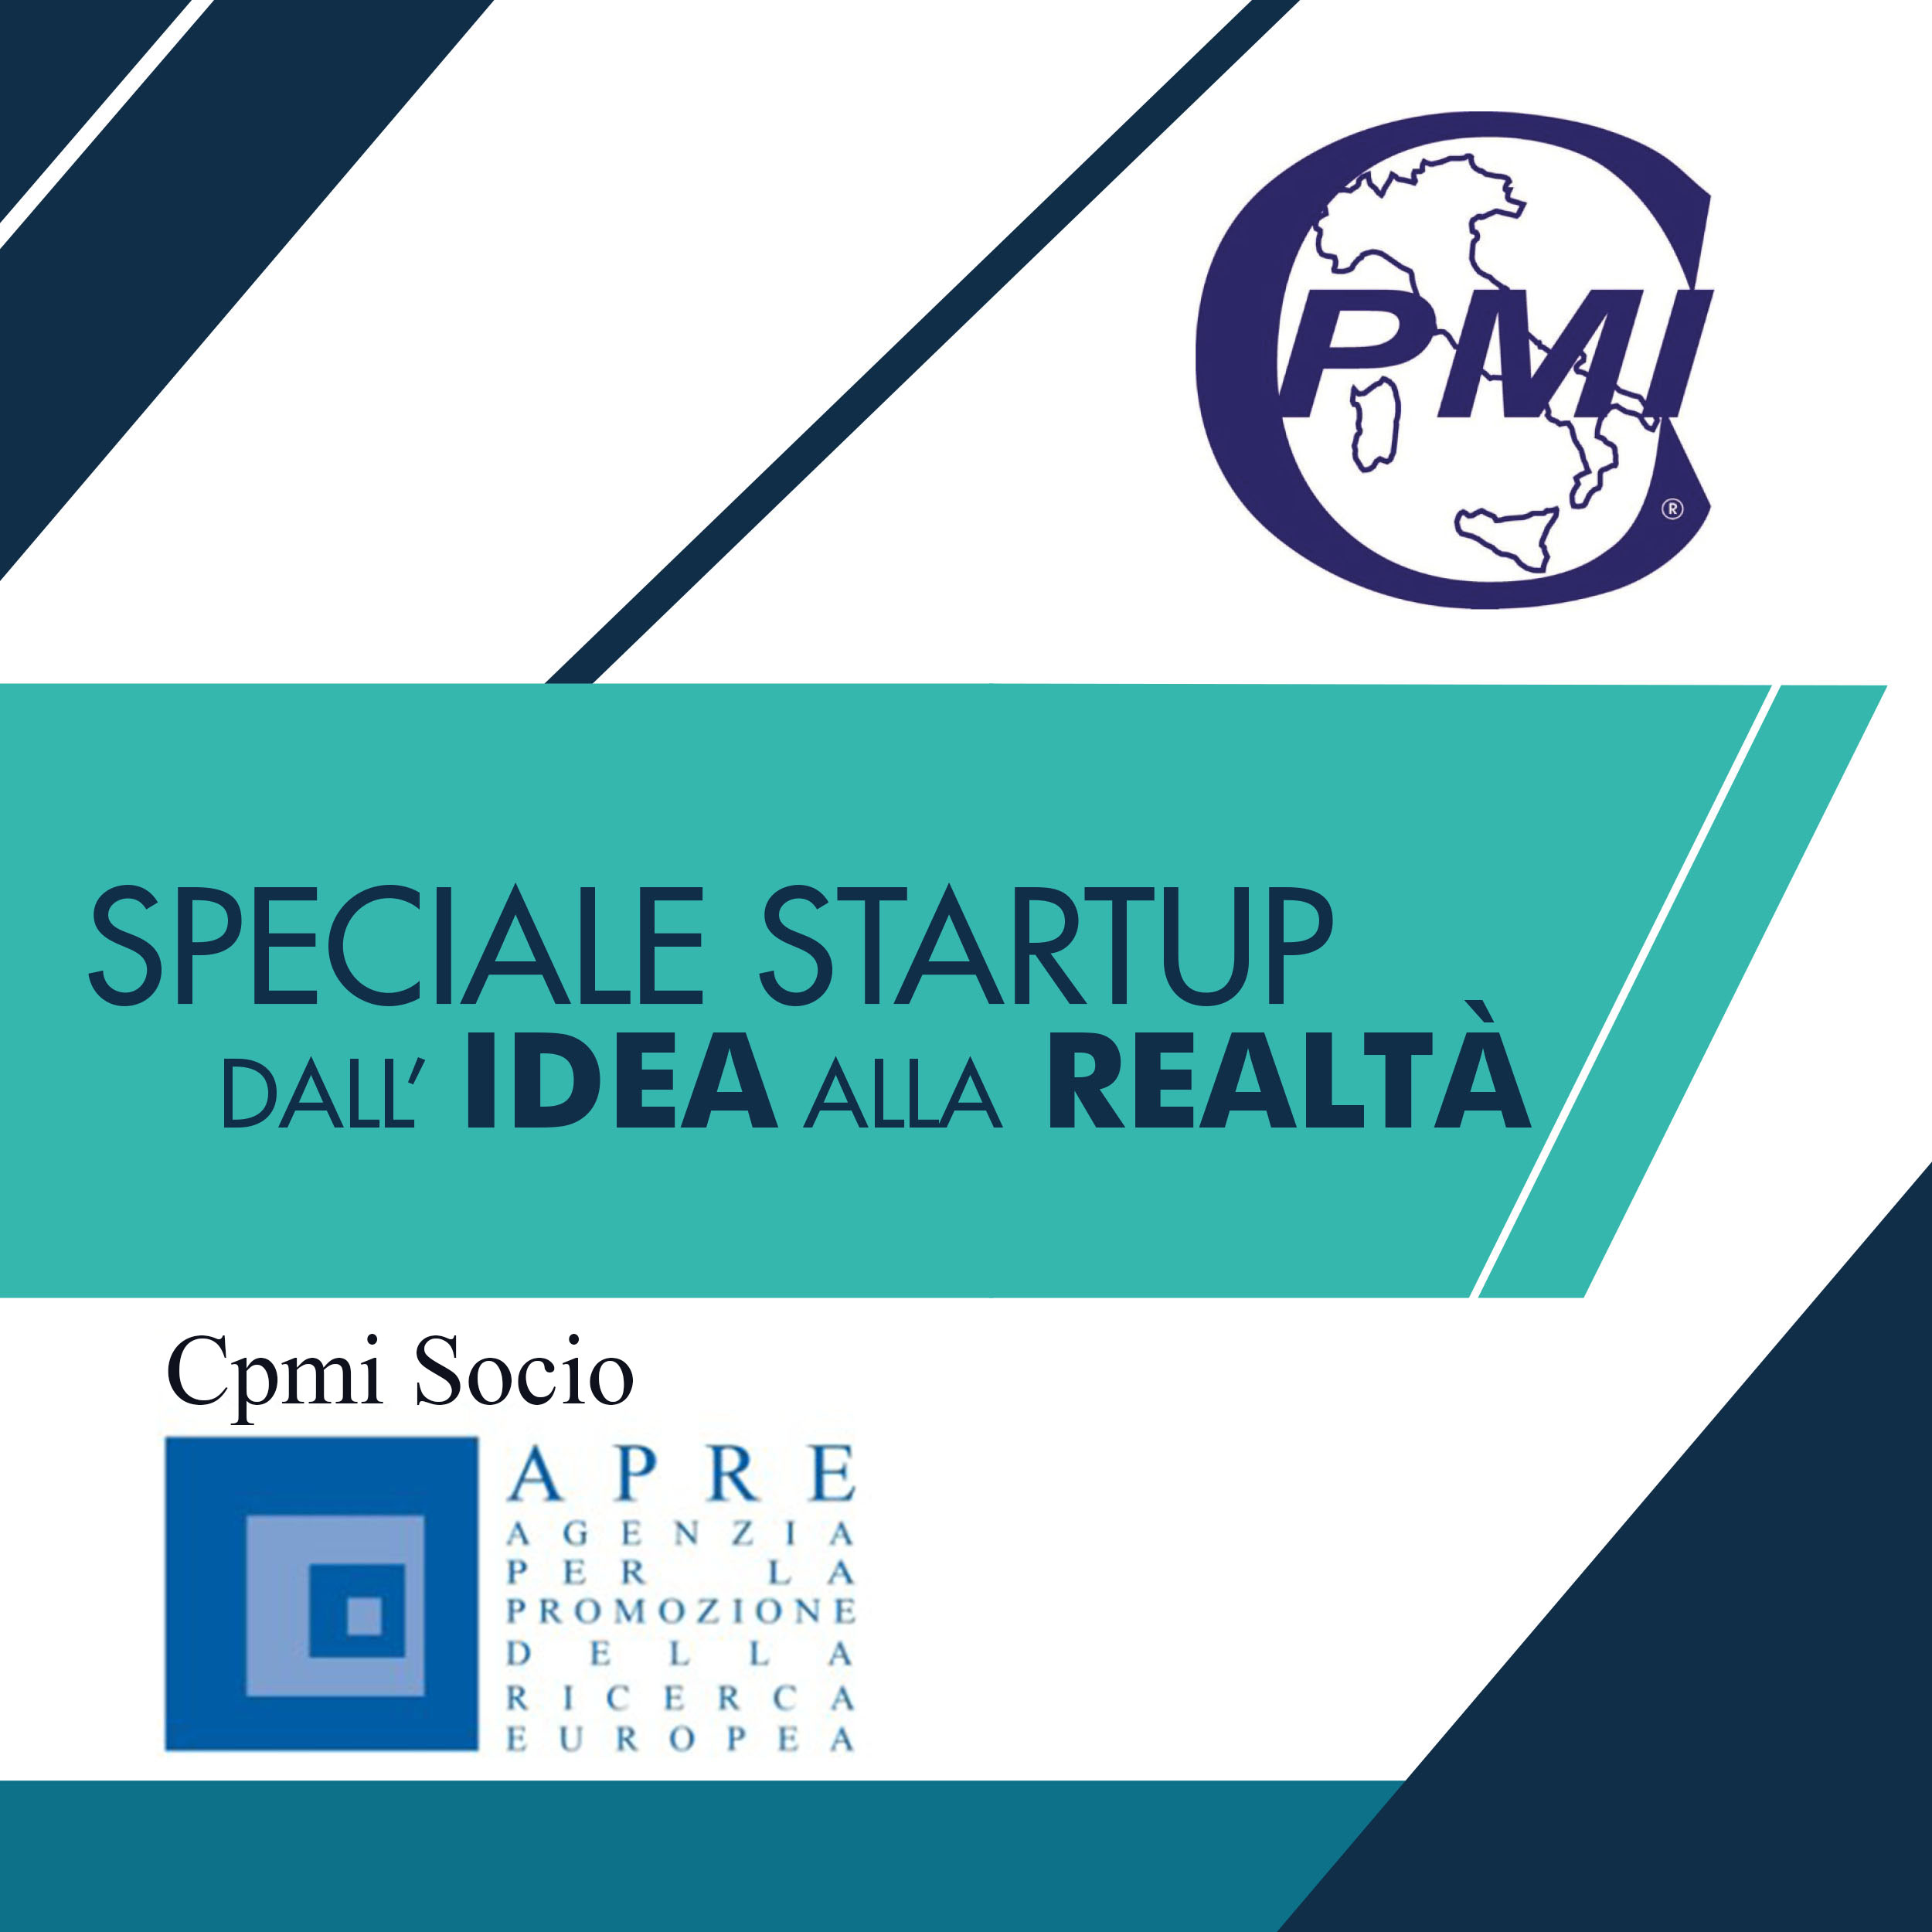 Innovatives italienisches Startup